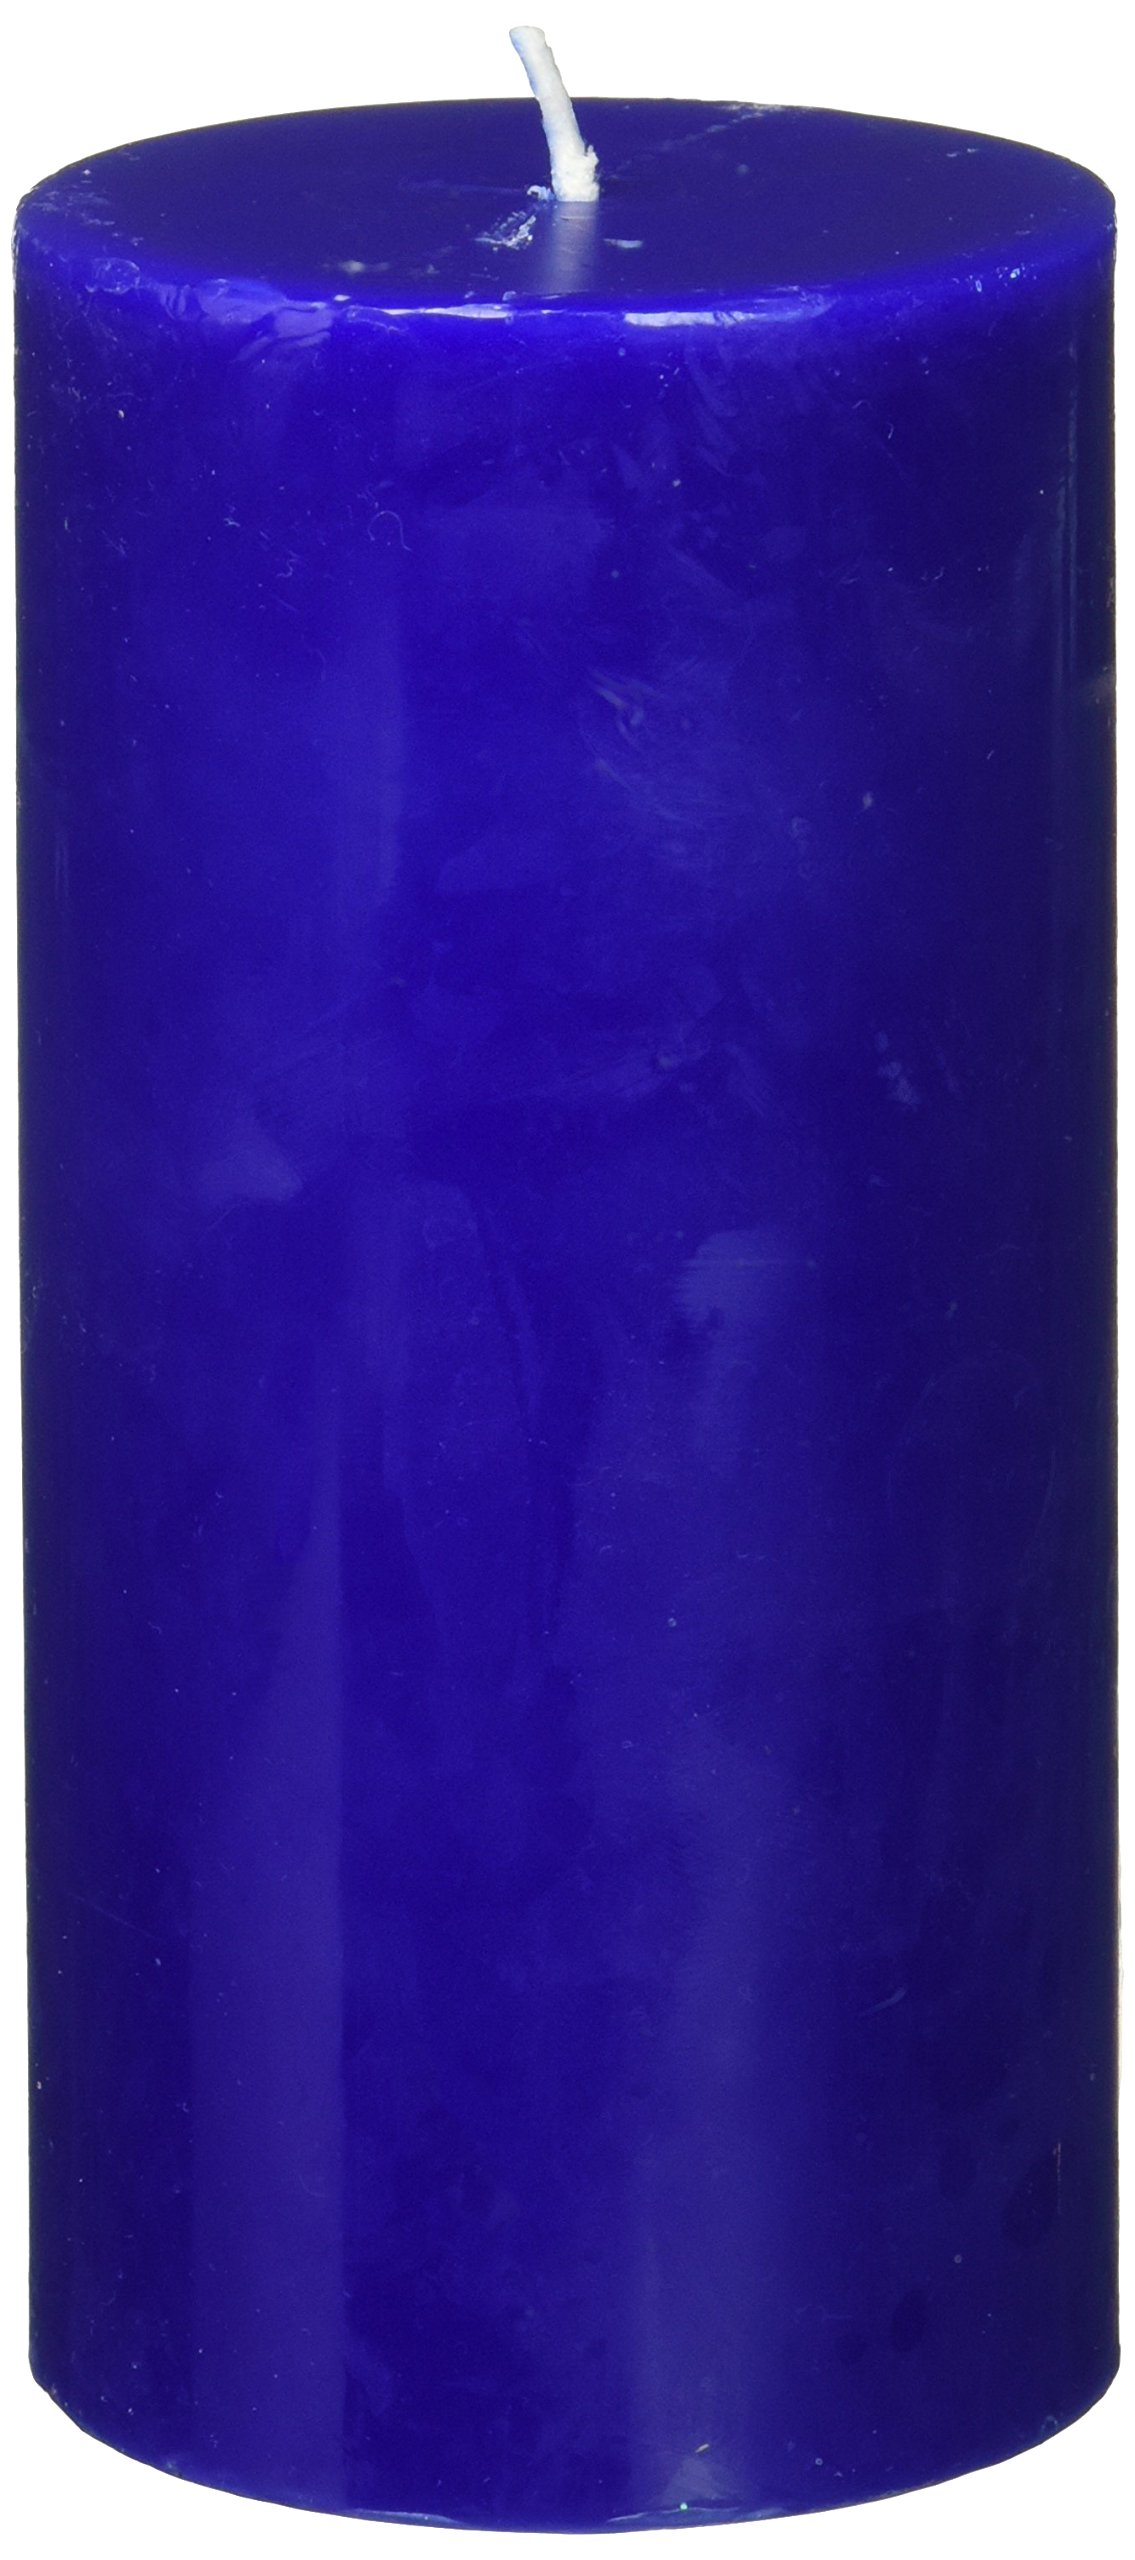 Zest Candle Pillar Candle, 3 by 6-Inch, Blue